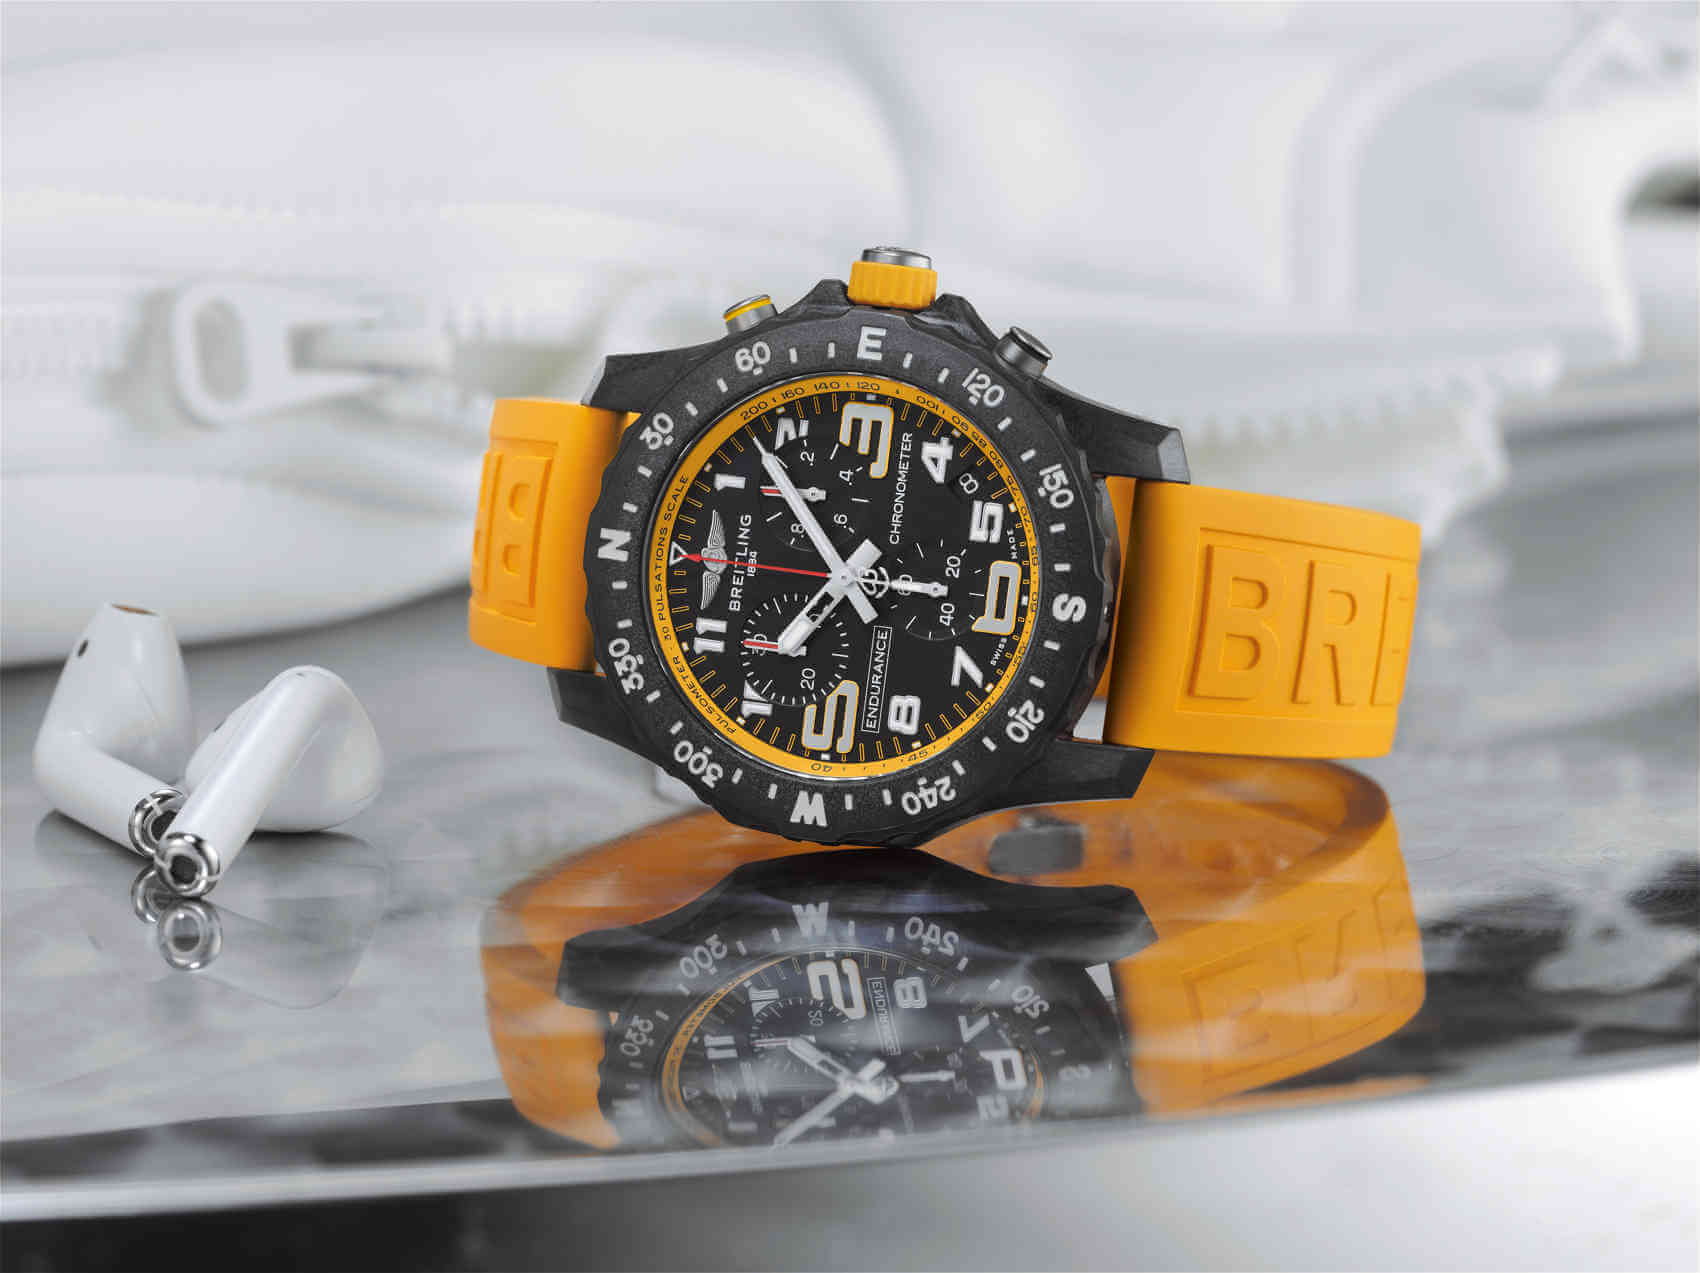 05_endurance-pro-with-a-yellow-inner-bezel-and-rubber-strap-1